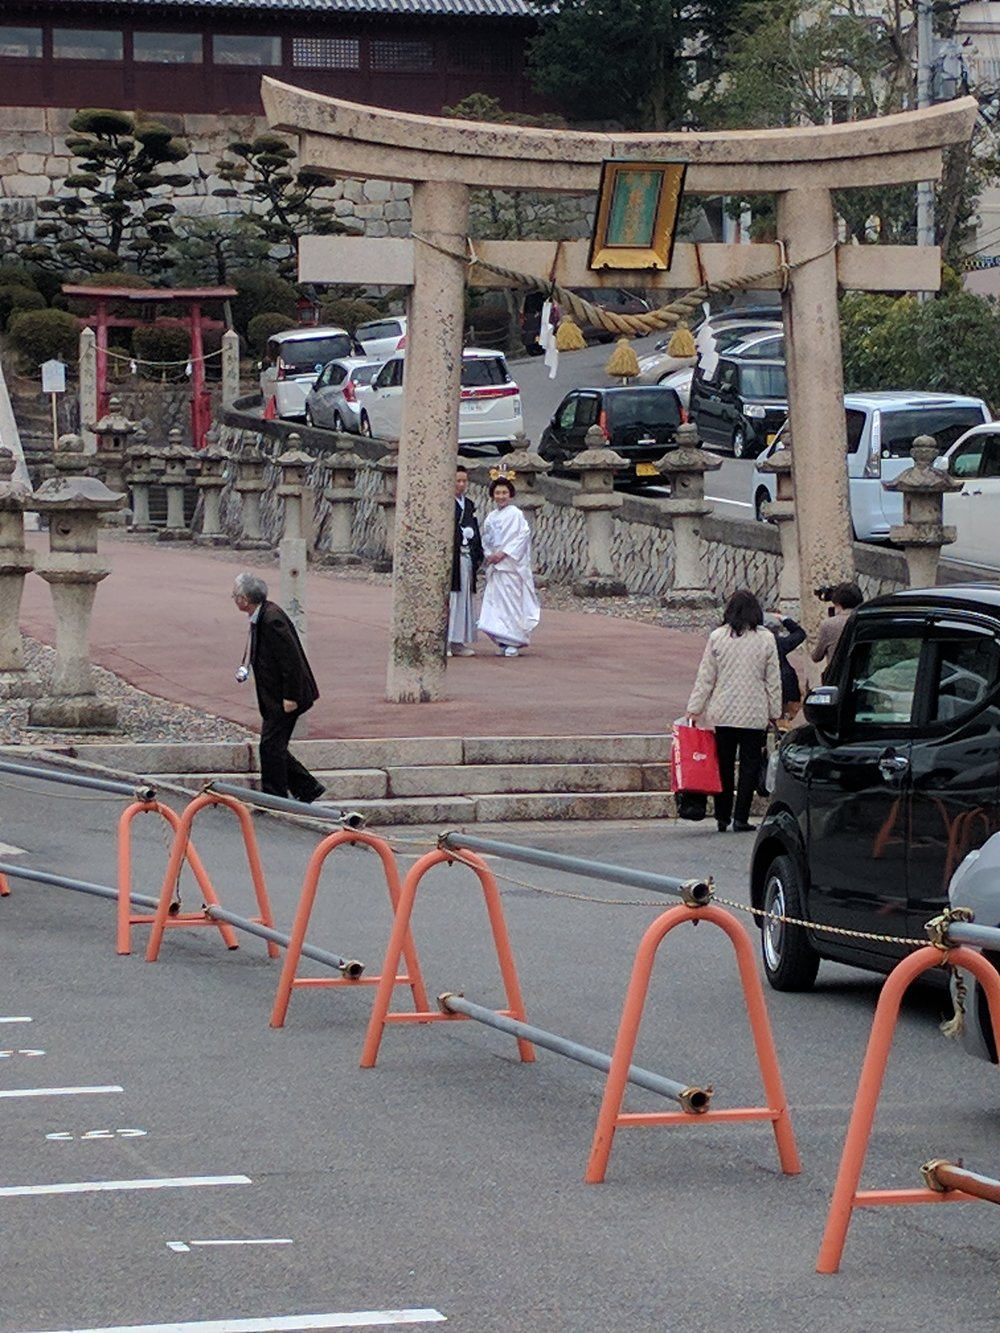 Spotted! Wedding photos!